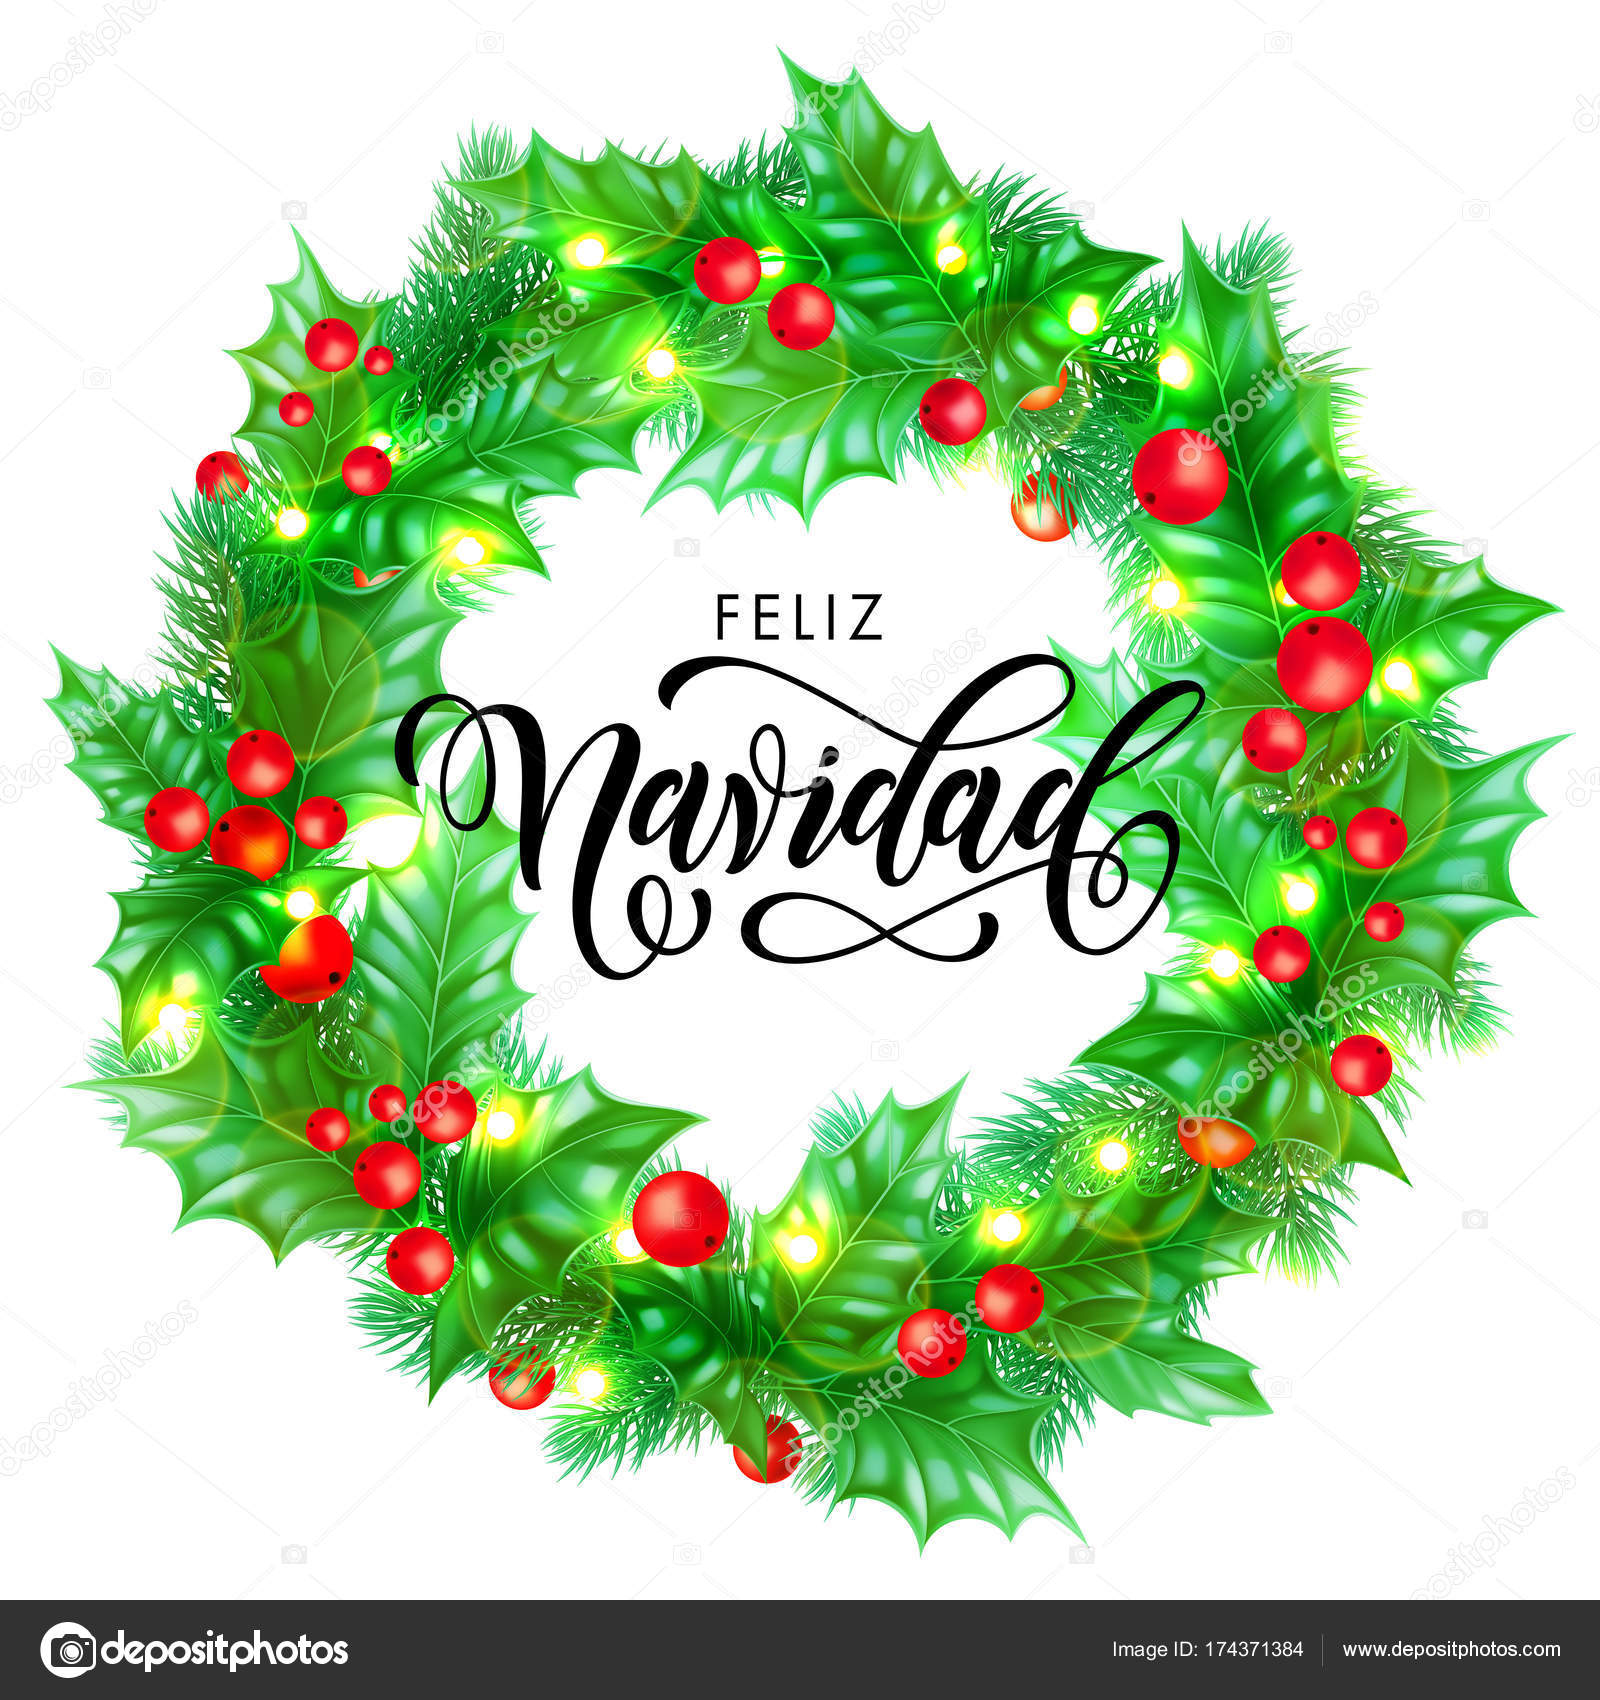 feliz navidad spanish merry christmas holiday hand drawn calligraphy text for greeting card of wreath decoration